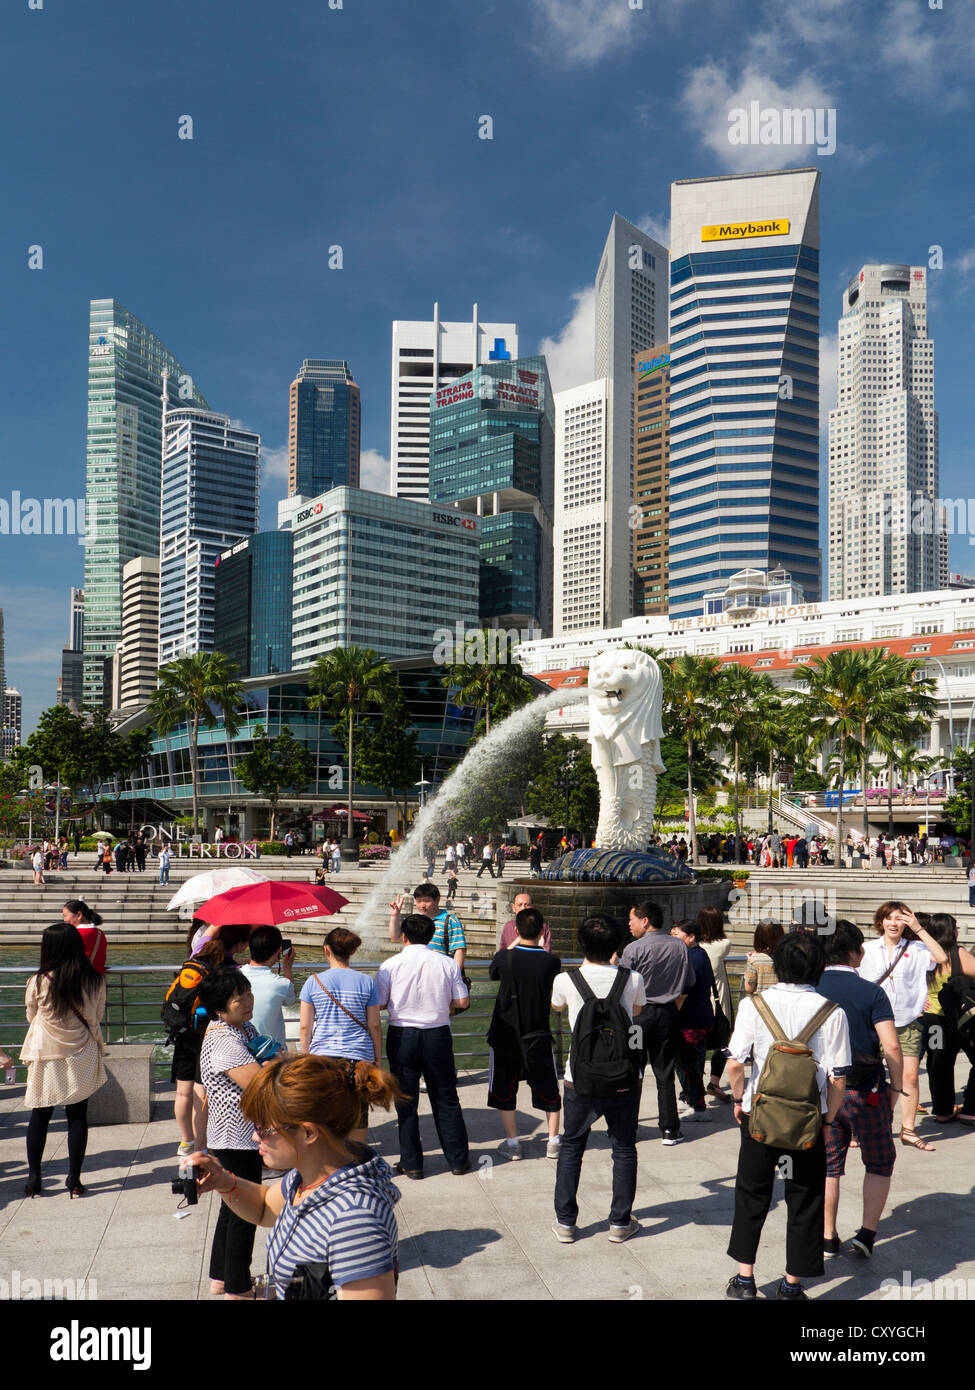 Der Merlion Statue und Touristen, Singapur Stockbild